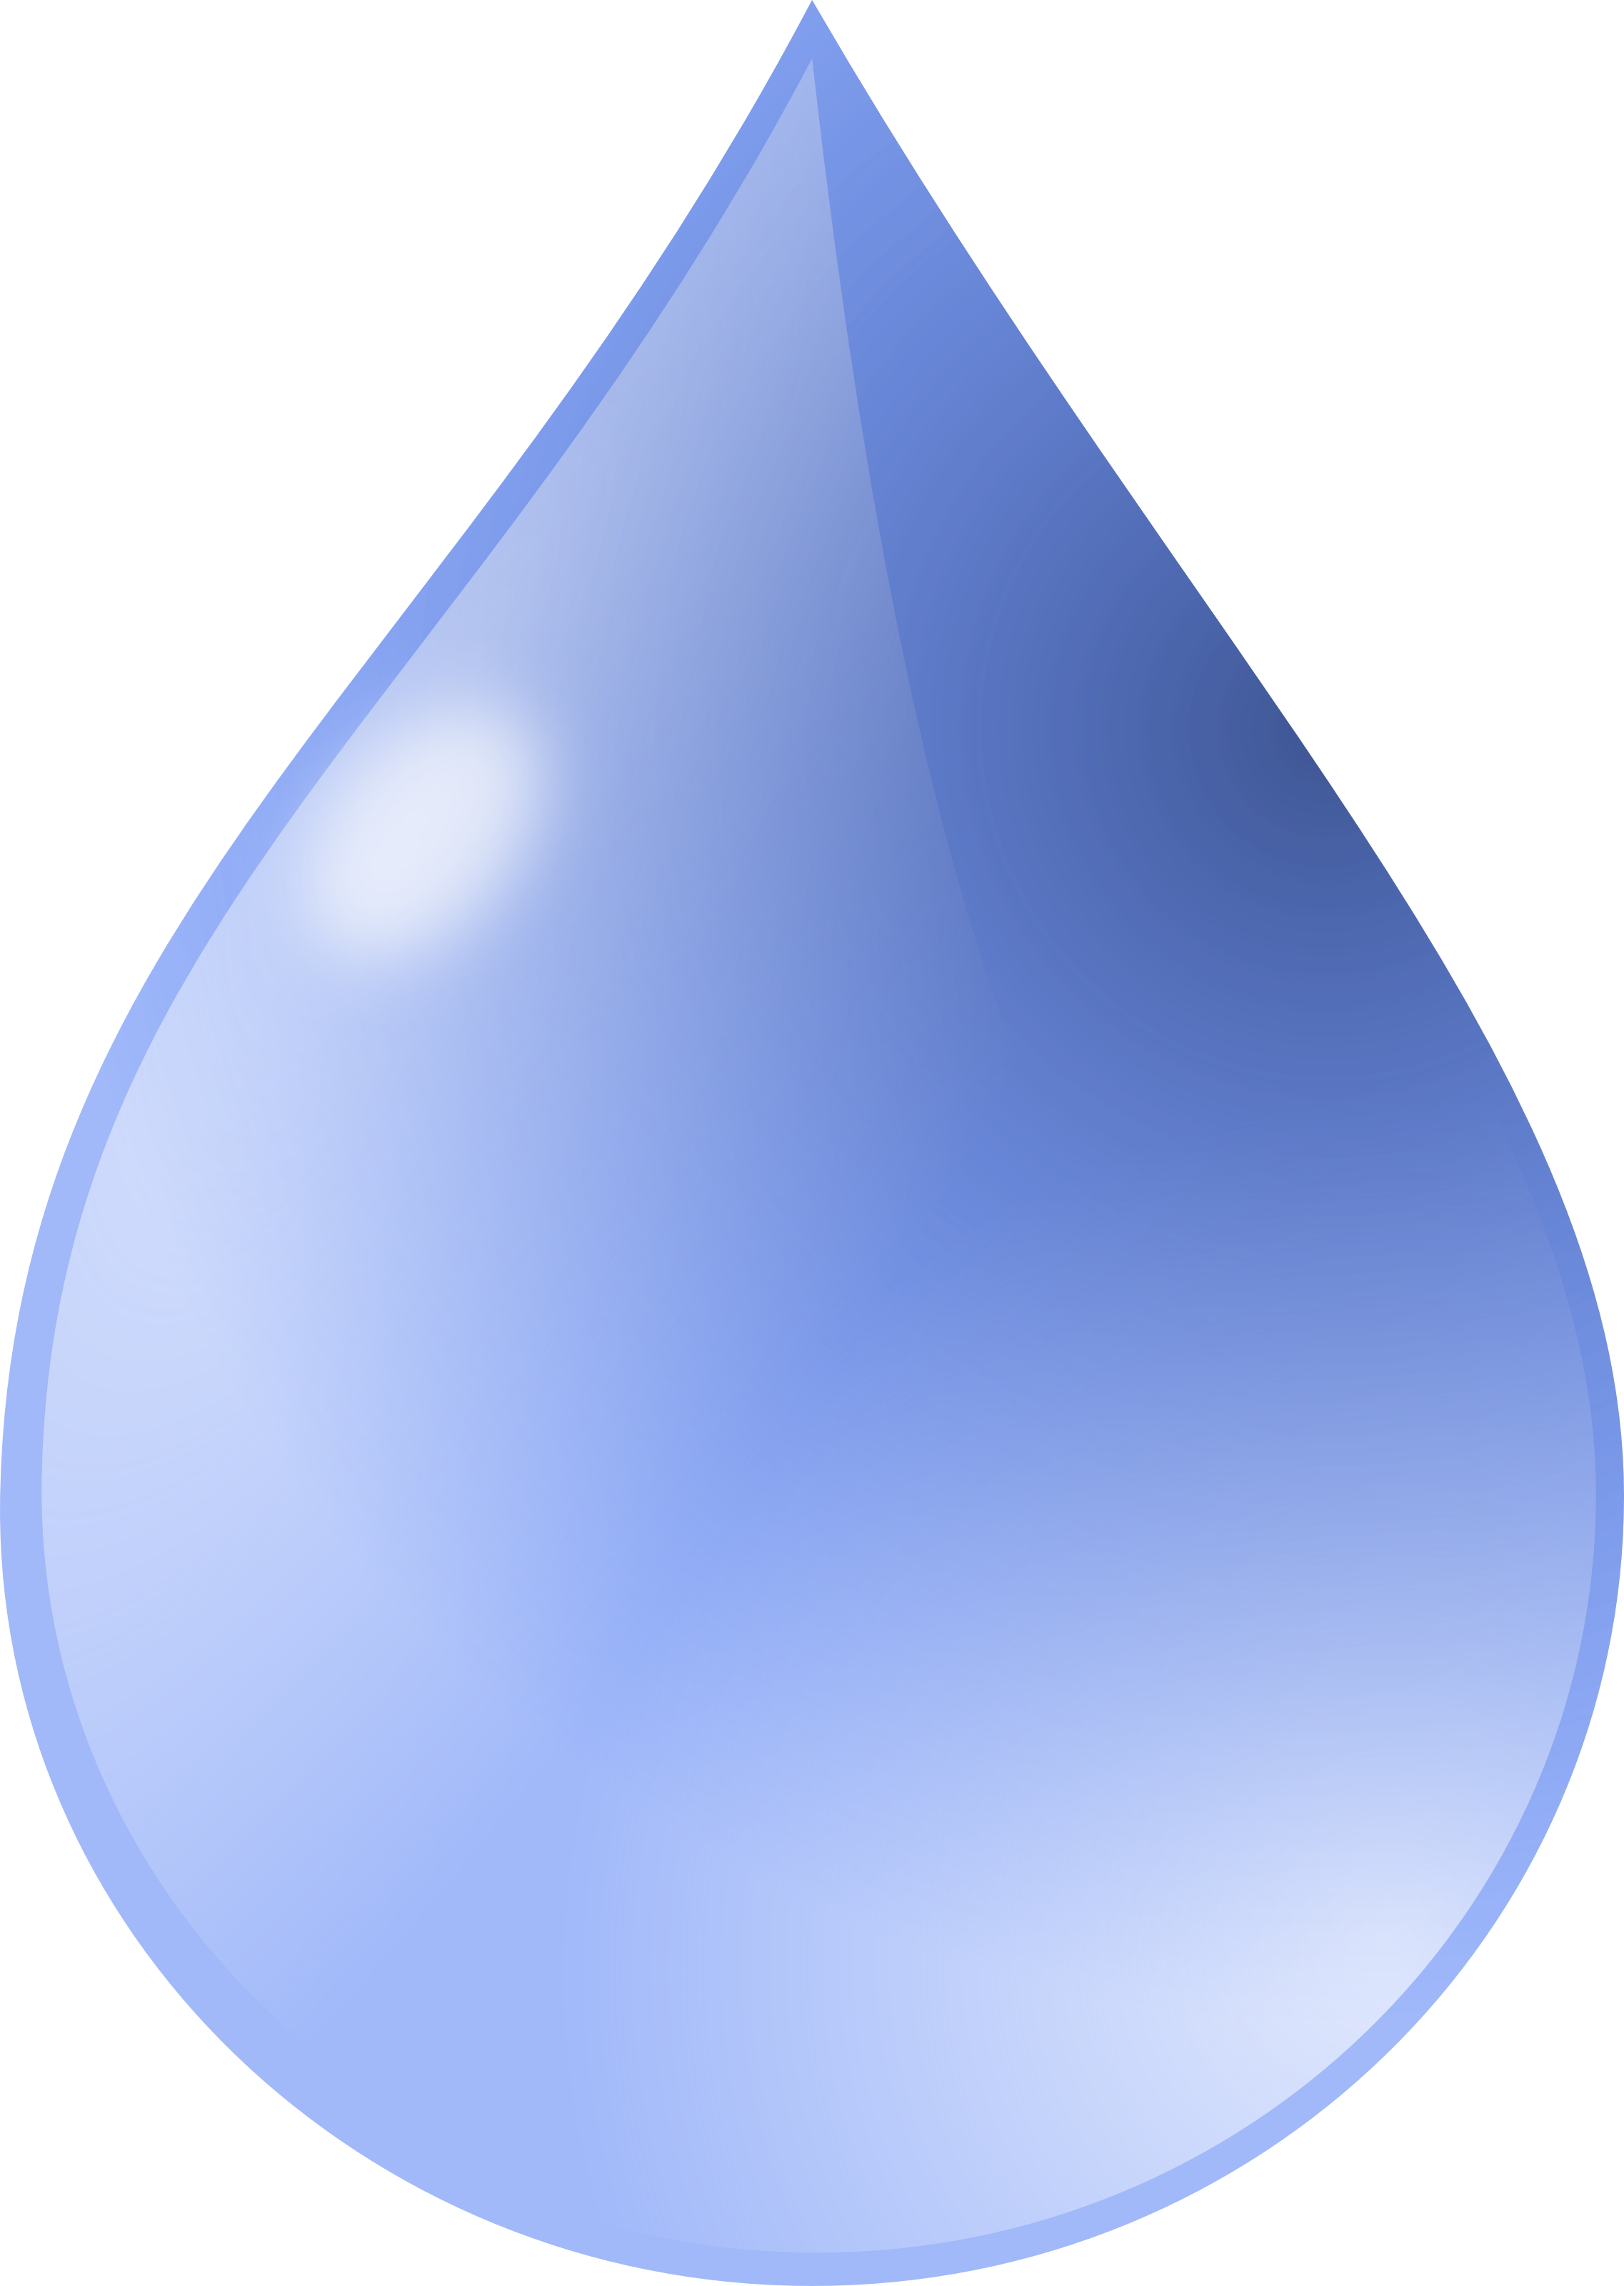 Water droplet clipart png picture free Download Water Drop Clipart HQ PNG Image | FreePNGImg picture free